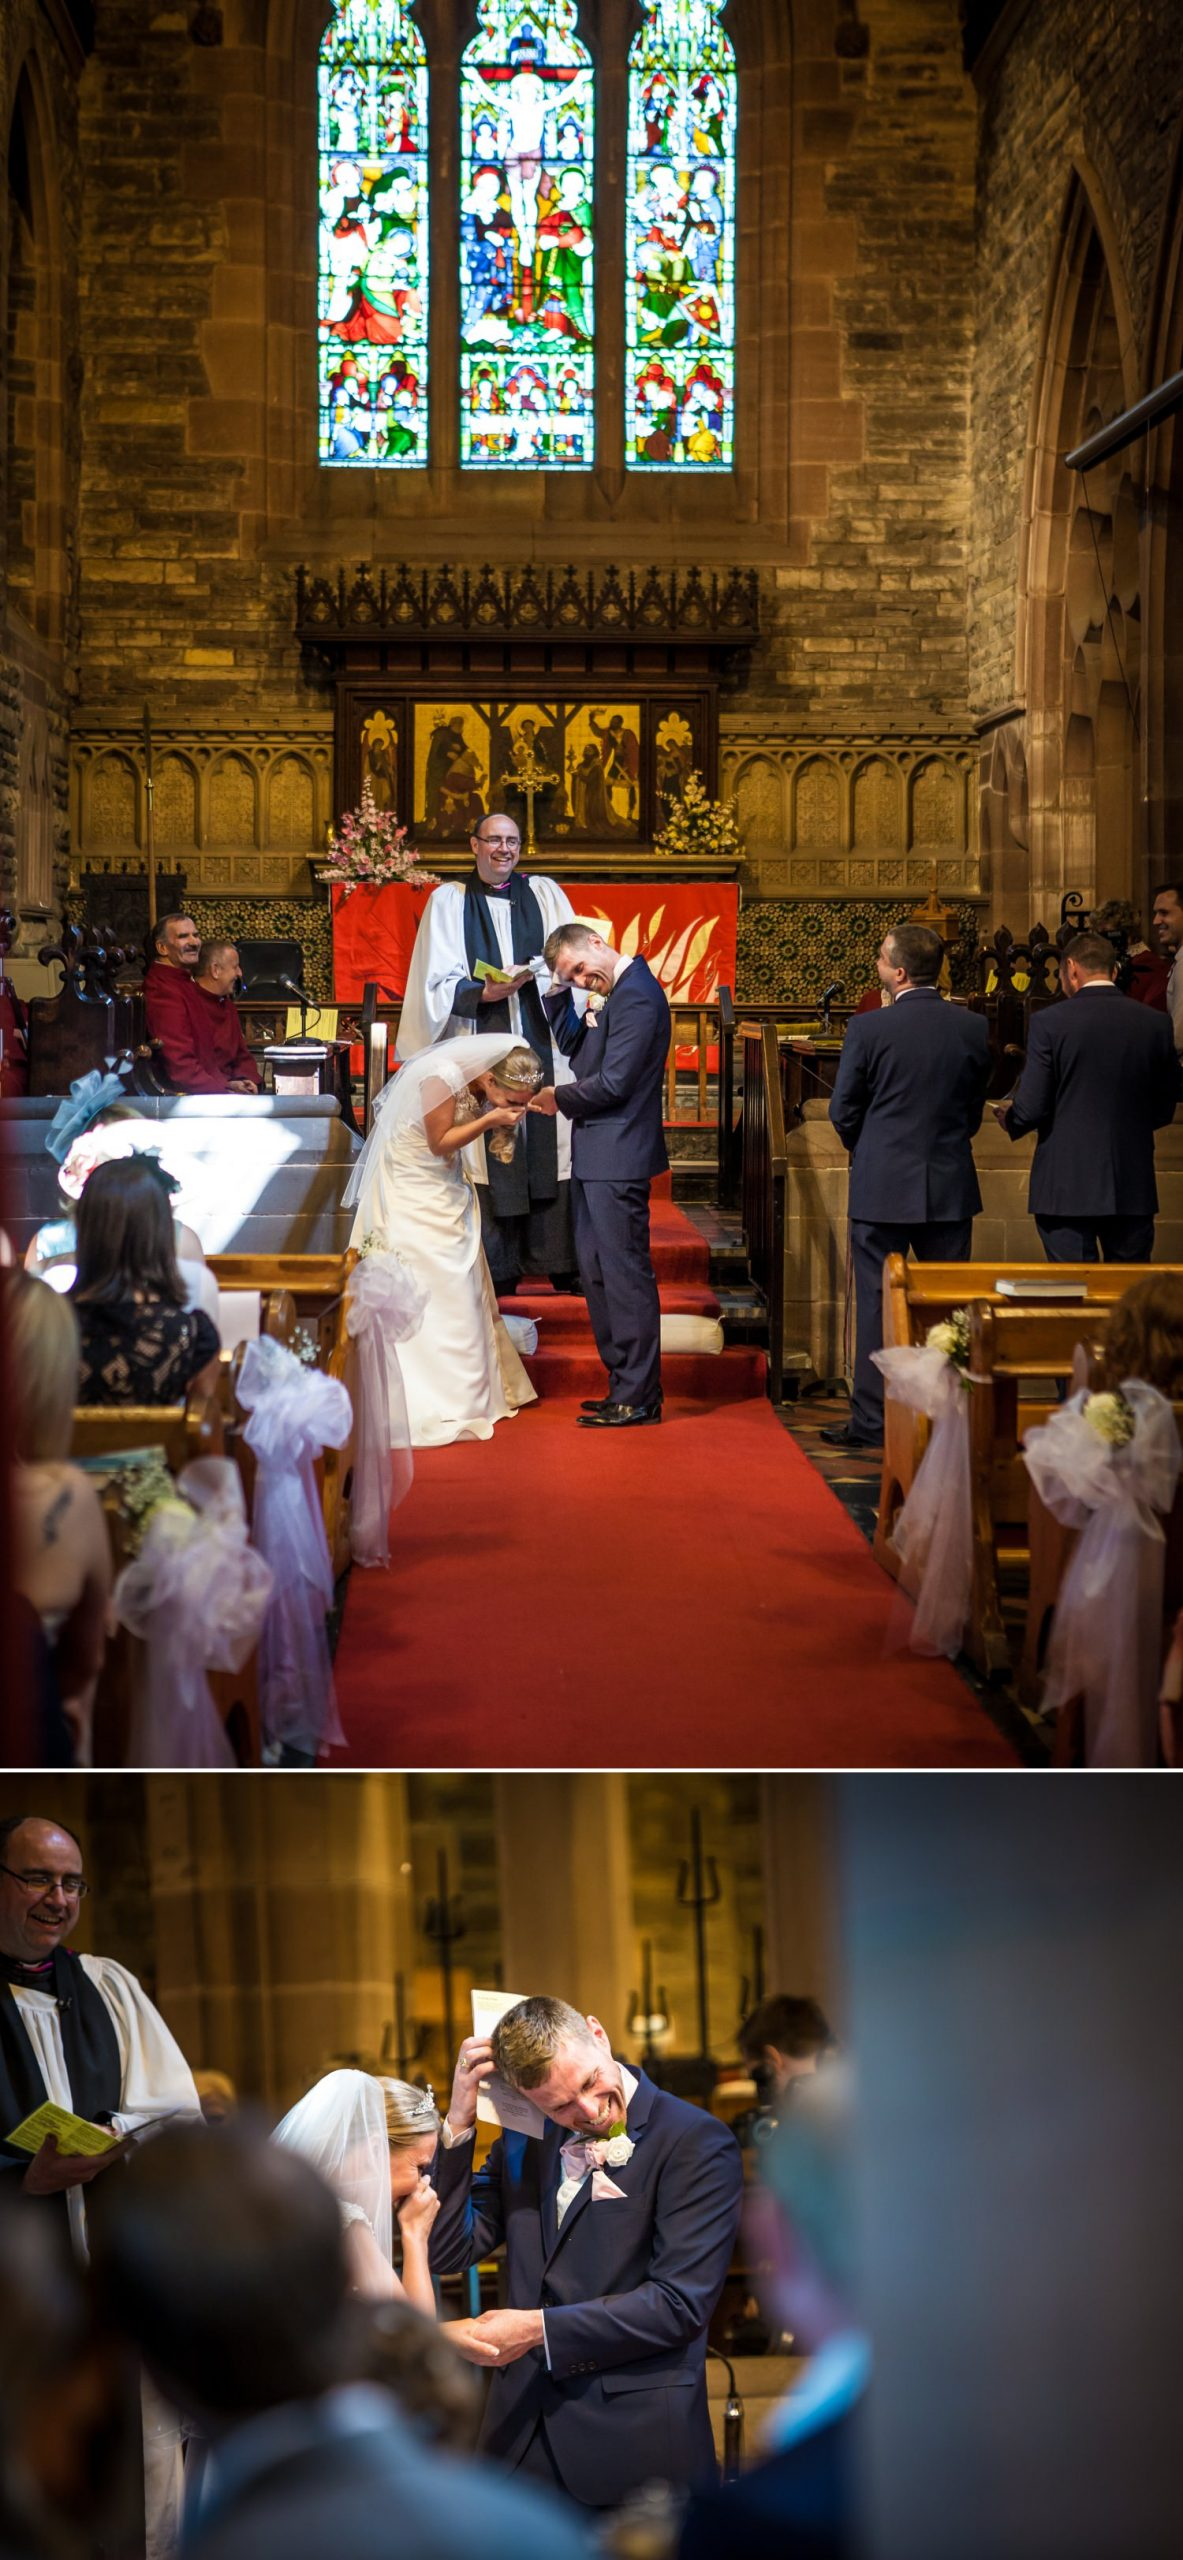 The ring gets stuck in a church wedding ceremony in Liverpool